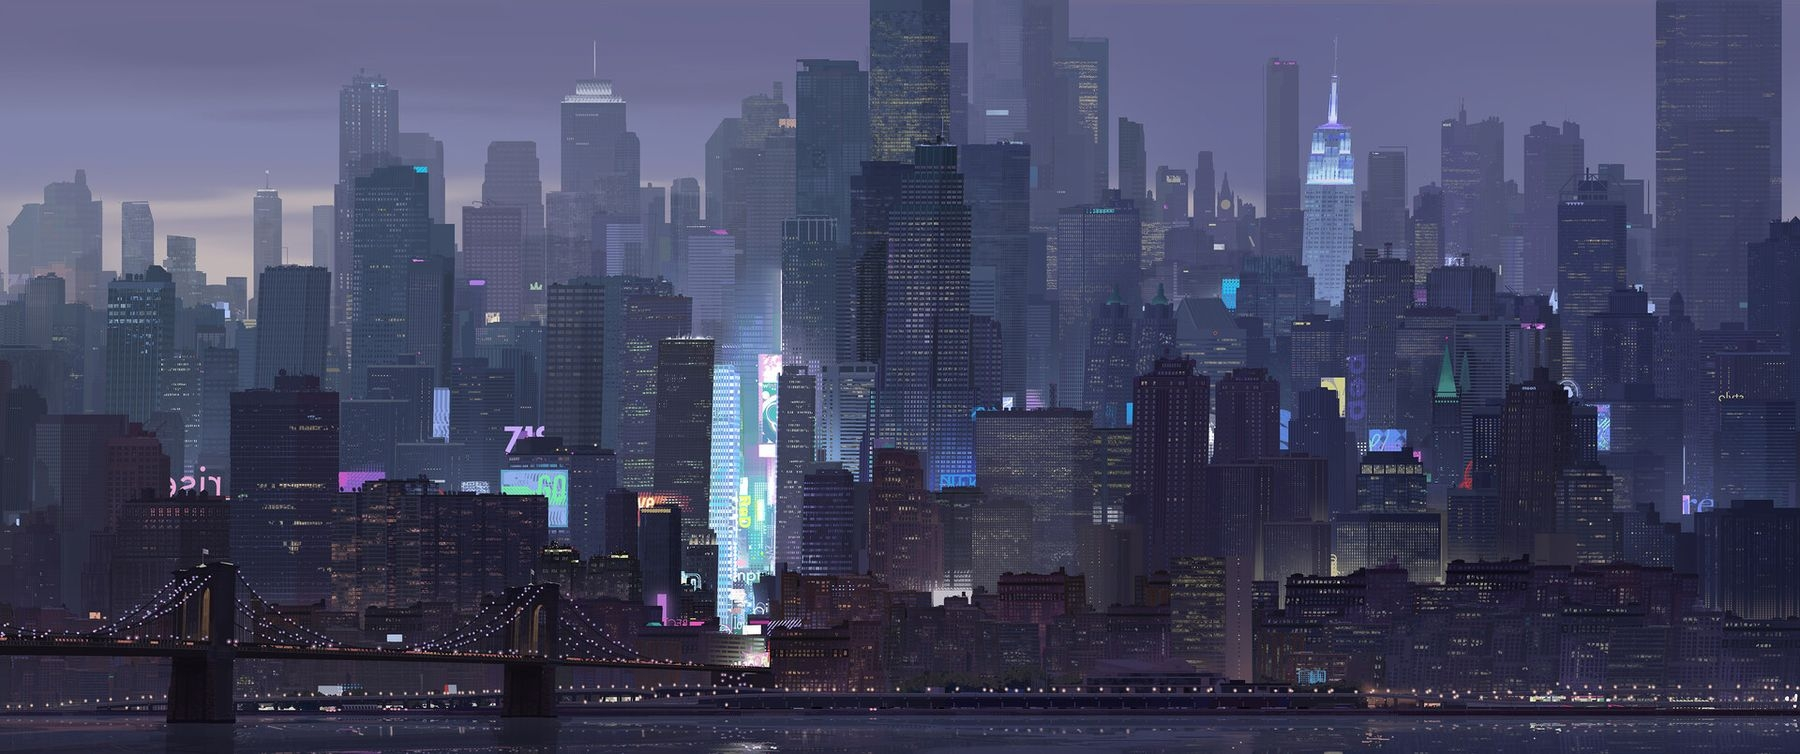 Spider-Man: Into the Spider-Verse Concept Art by Patrick O'Keefe